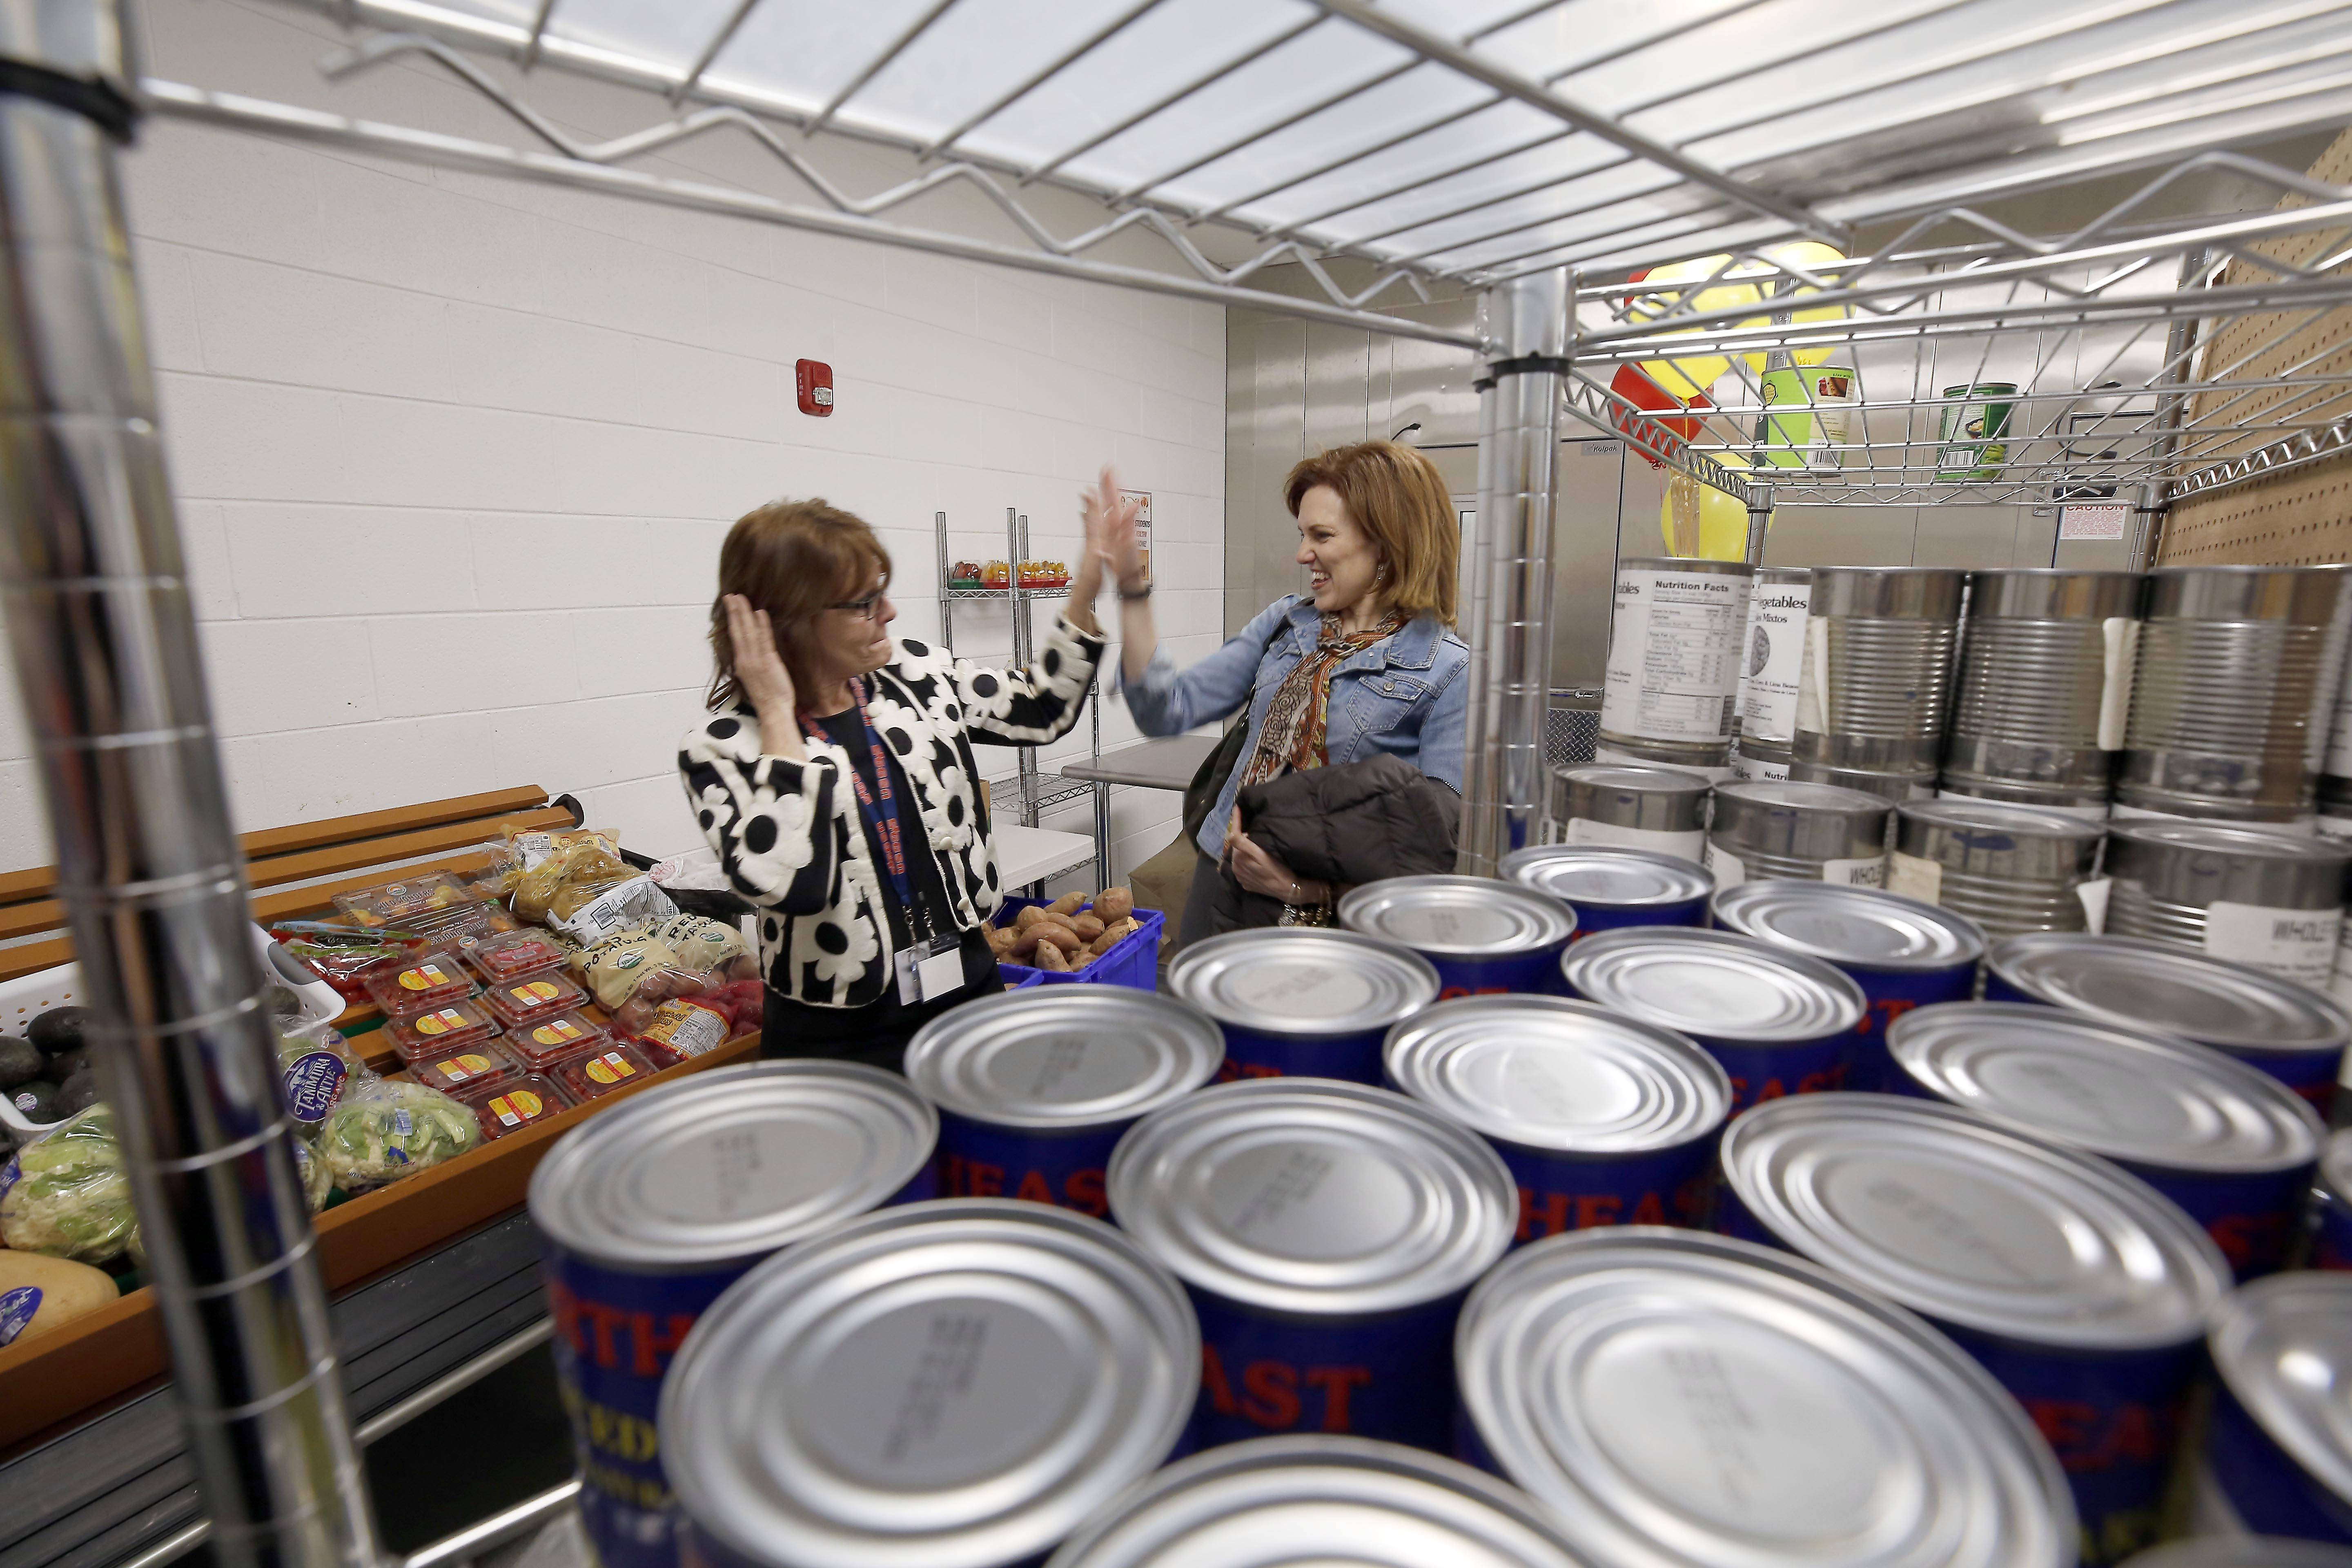 Diane Renner, left, director of the Marie Wilkinson Community Food Pantry at East Aurora High School, walks through the new location with Julie Yurko, president of the Northern Illinois Food Bank.